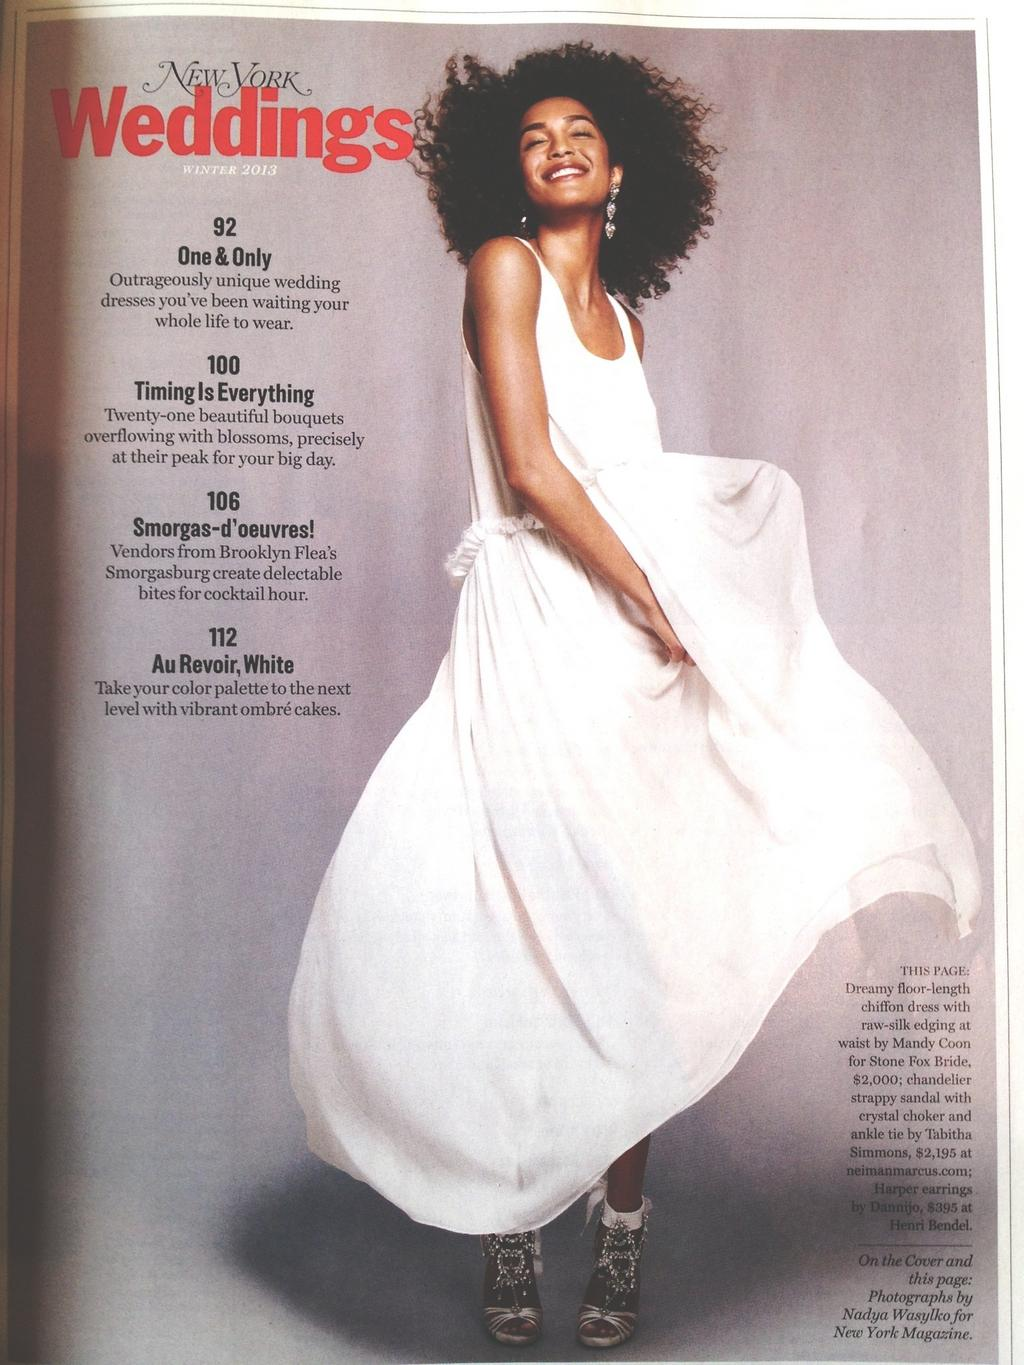 "‏  @ StoneFoxBride        ""Thank you  @ NYMag   for featuring  @ mandycoon   for SFB white chiffon dress in the latest NY Weddings issue""."